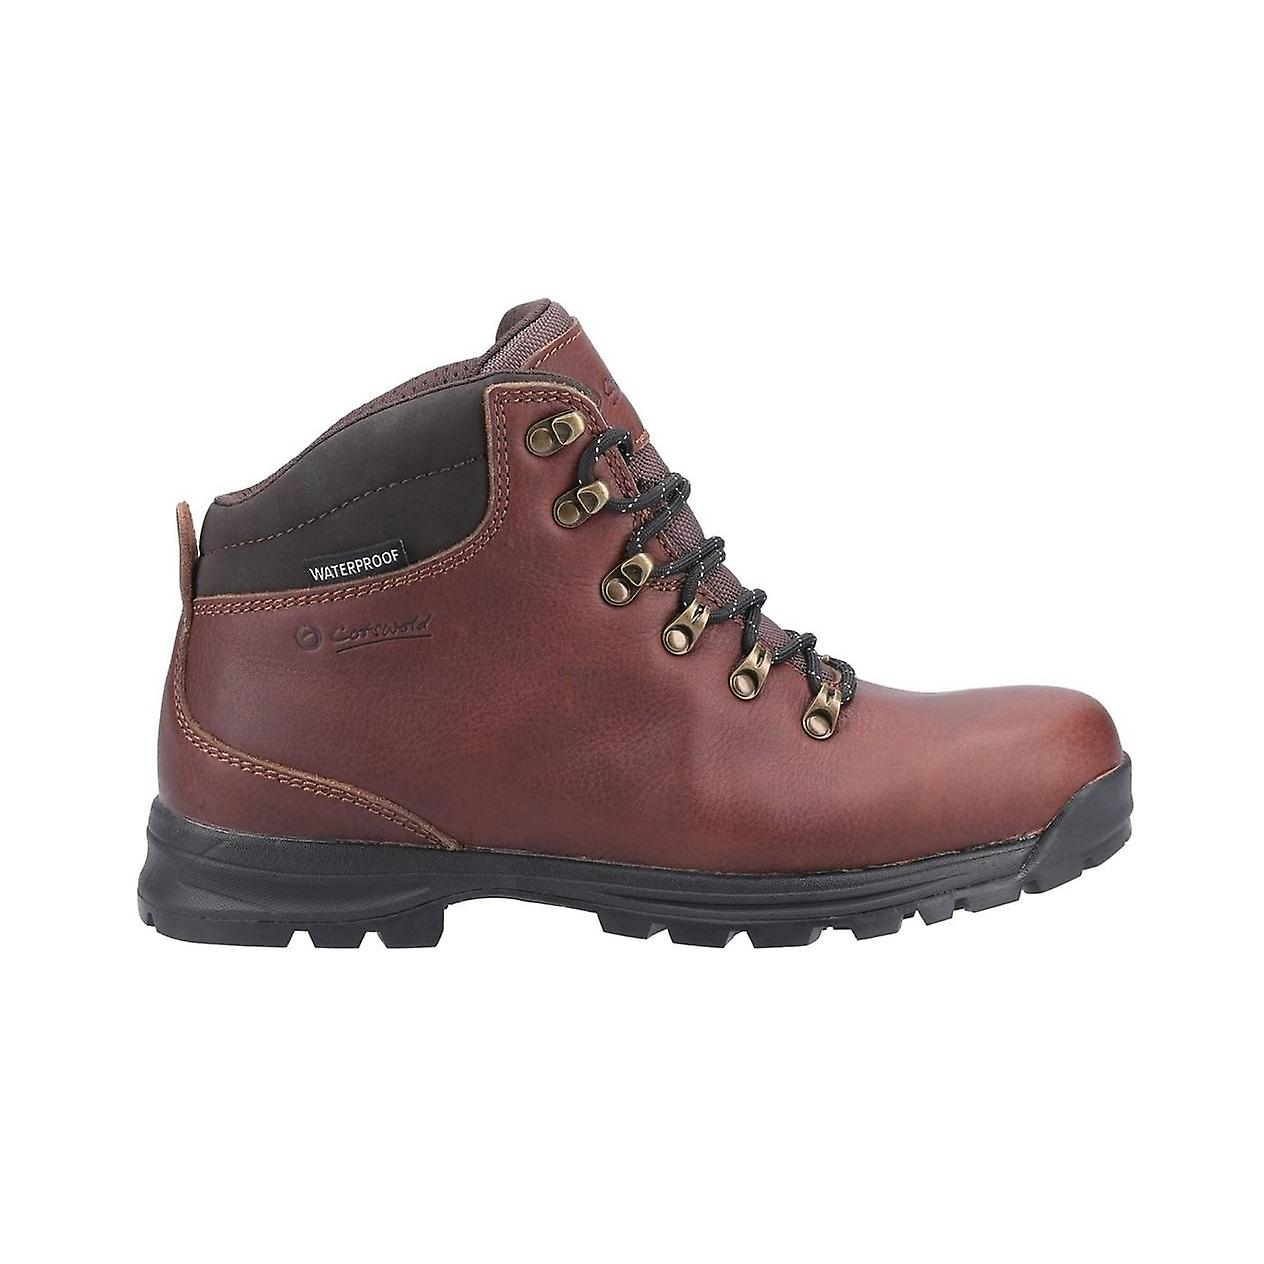 Cotswold Kingsway Mens Lace Up Leather Hiking Boot